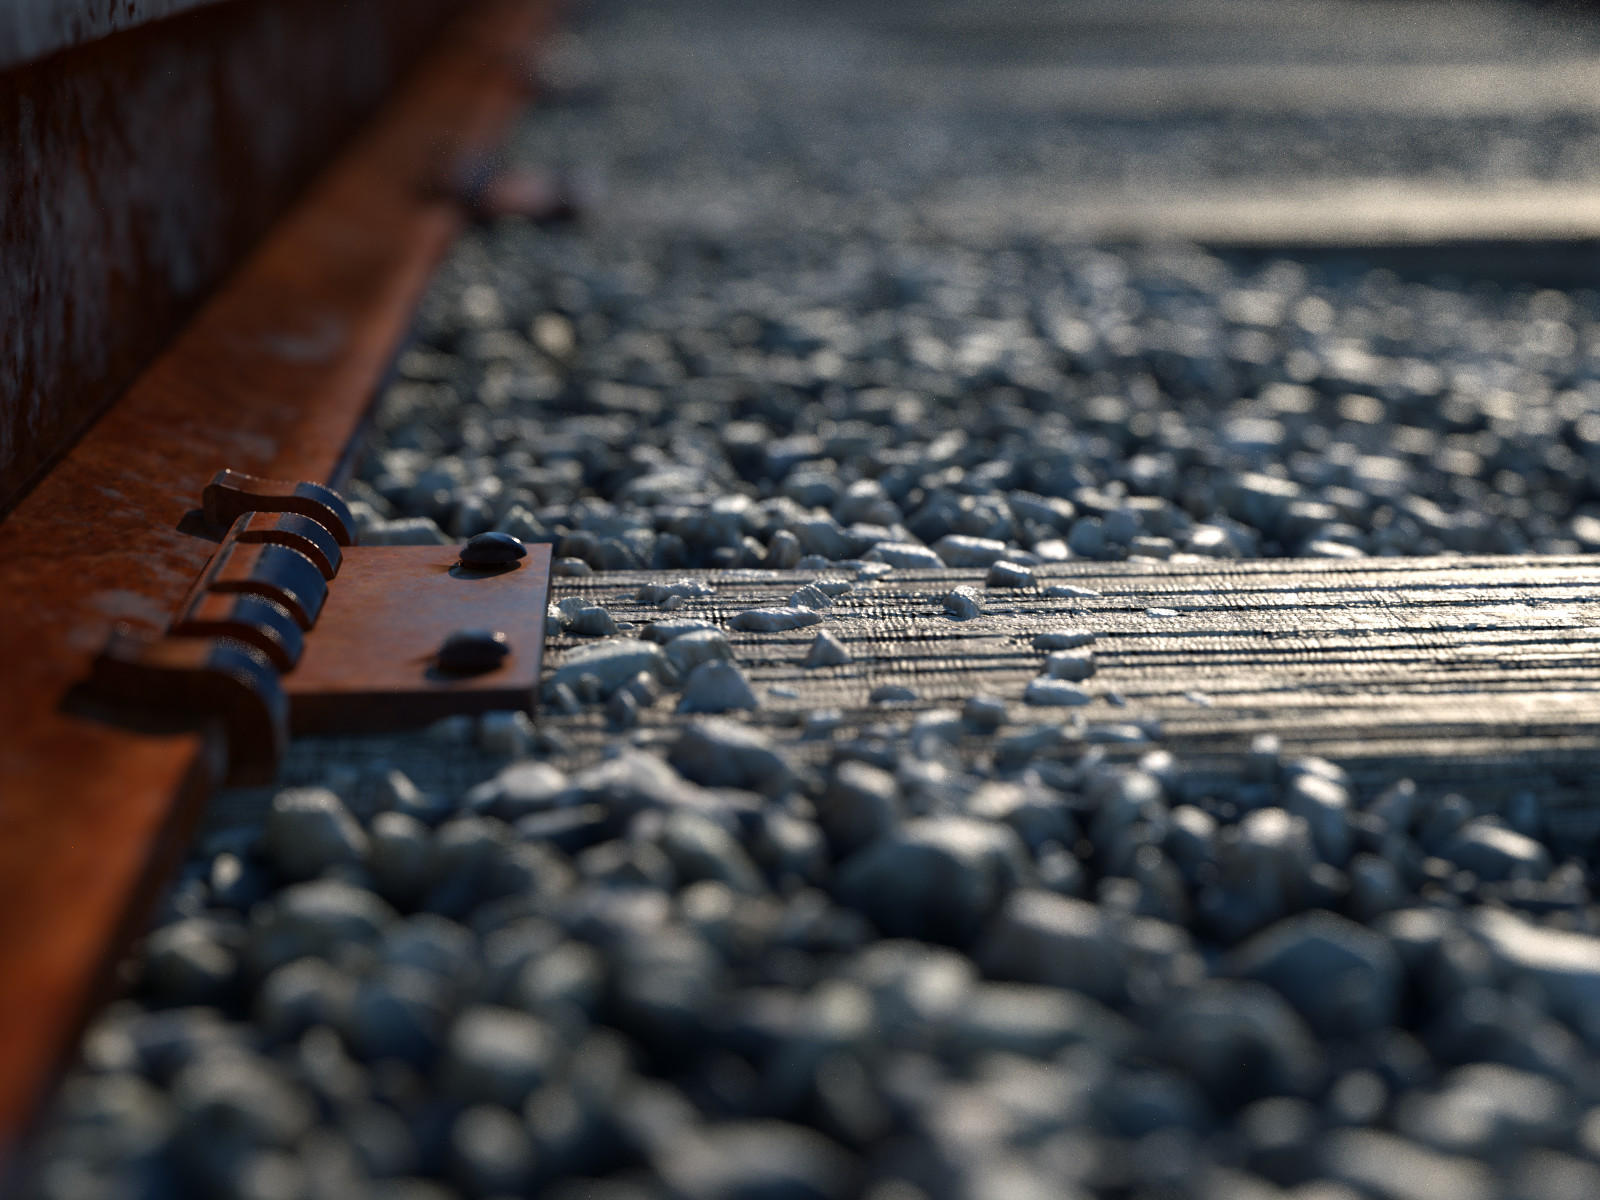 Railroad - Procedural Texturing